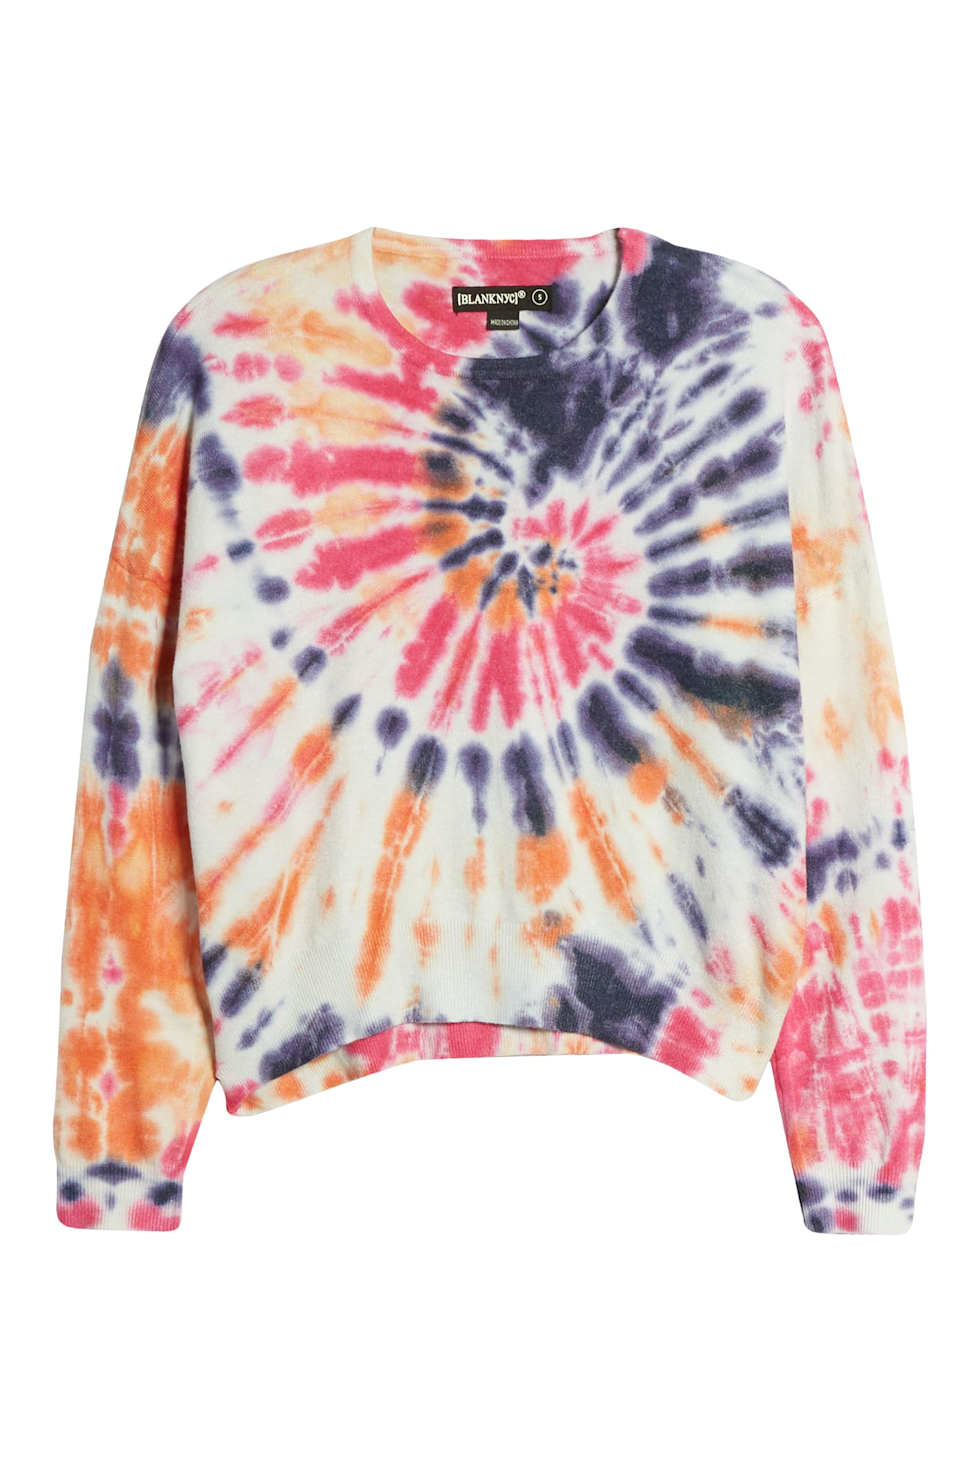 """<br><br><strong>Blank NYC</strong> Rainbow Tie-Dye Crop Sweater, $, available at <a href=""""https://go.skimresources.com/?id=30283X879131&url=https%3A%2F%2Fwww.nordstrom.com%2Fs%2Fblanknyc-rainbow-tie-dye-crop-sweater%2F5504890%3Forigin%3Dkeywordsearch-personalizedsort%26breadcrumb%3DHome%252FAll%2520Results%26color%3D650"""" rel=""""nofollow noopener"""" target=""""_blank"""" data-ylk=""""slk:Nordstrom"""" class=""""link rapid-noclick-resp"""">Nordstrom</a>"""